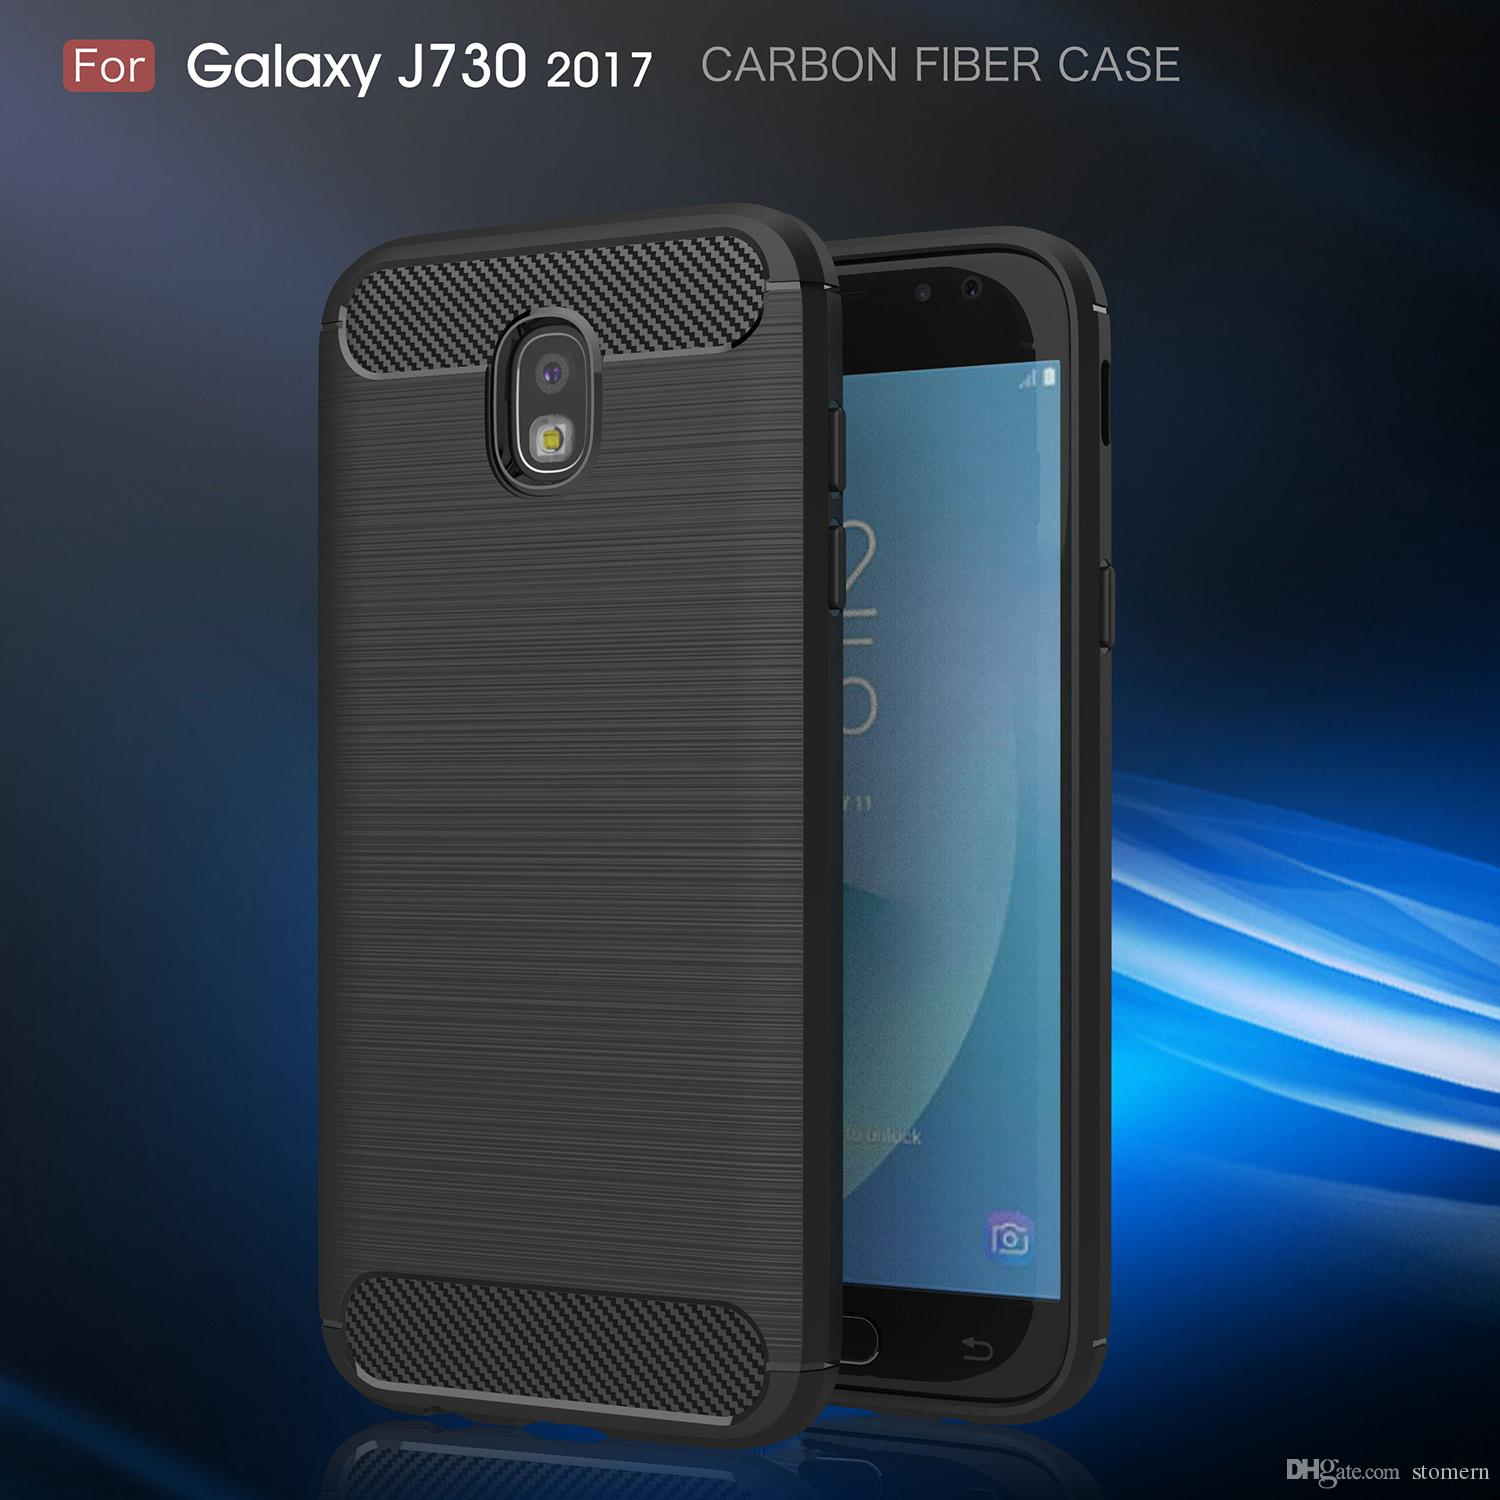 Carbon Fiber Case For Samsung Galaxy J7 Pro J5 J3 2017 J330 J530 J730 Eu Brushed Silicone Soft Rubber Back Cover Slim Armor Rugged Skin Rhinestone Cell